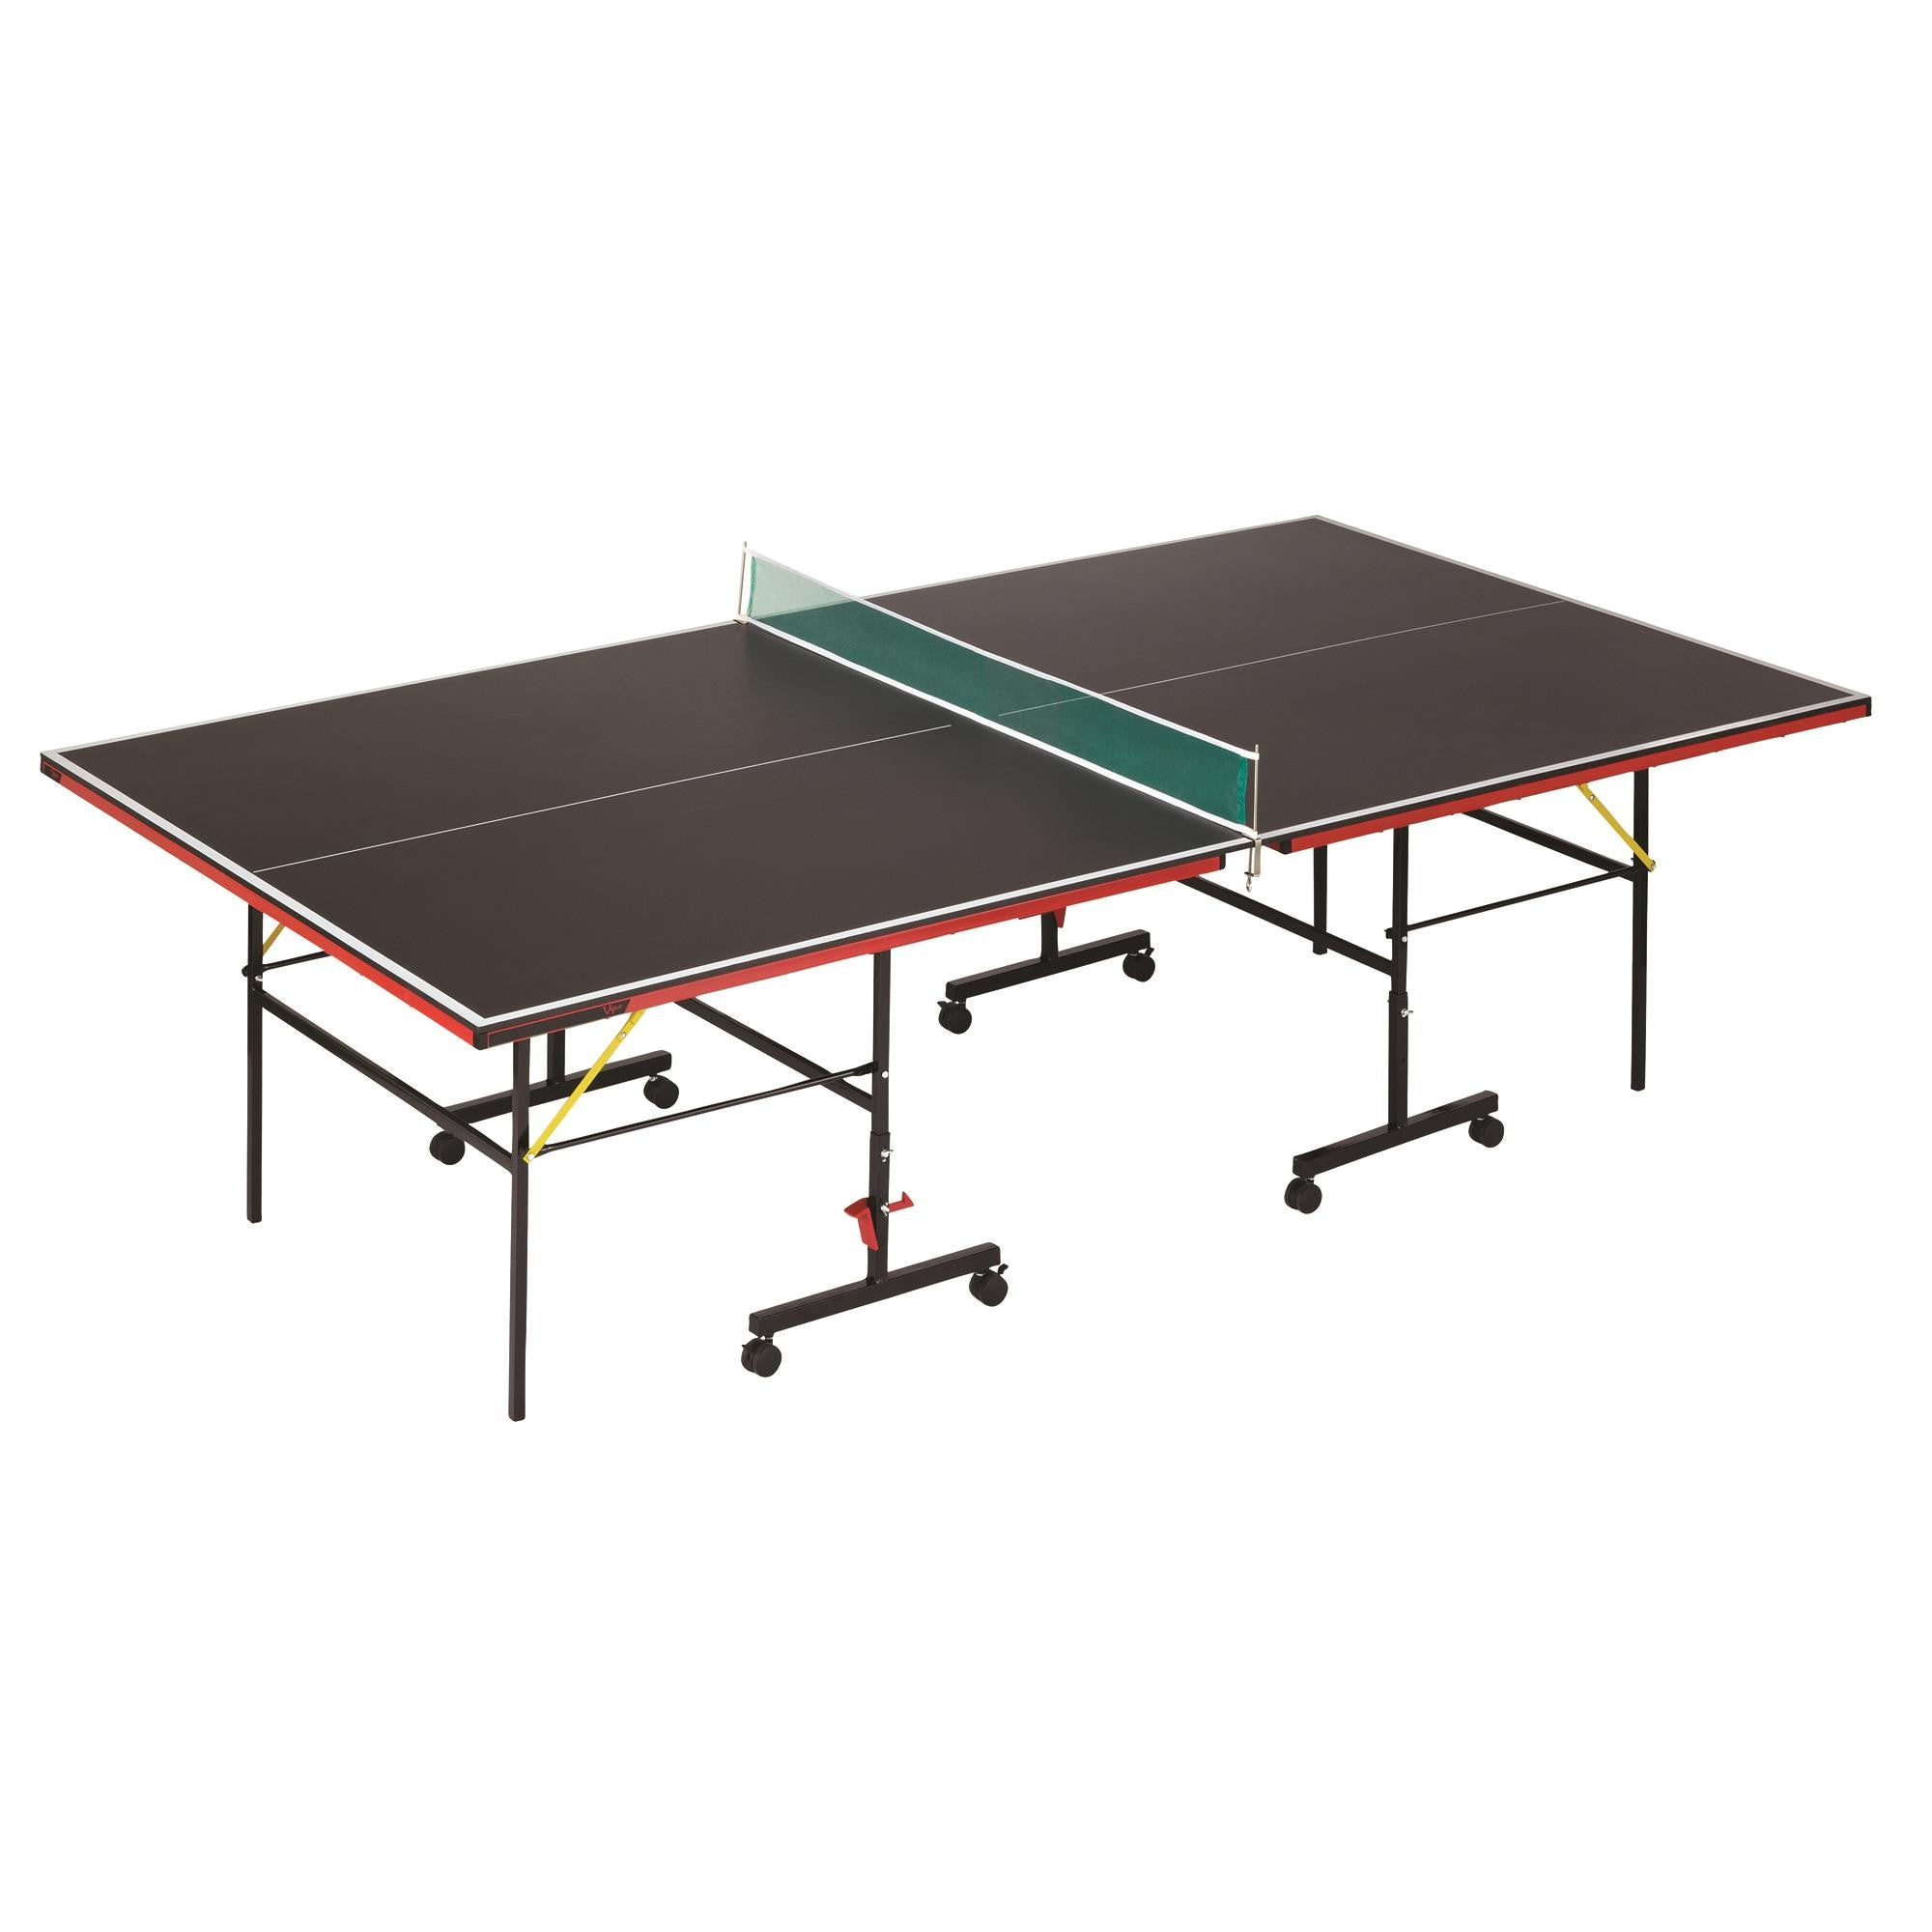 Playcraft extera outdoor table tennis table nj gamerooms for Table tennis 99